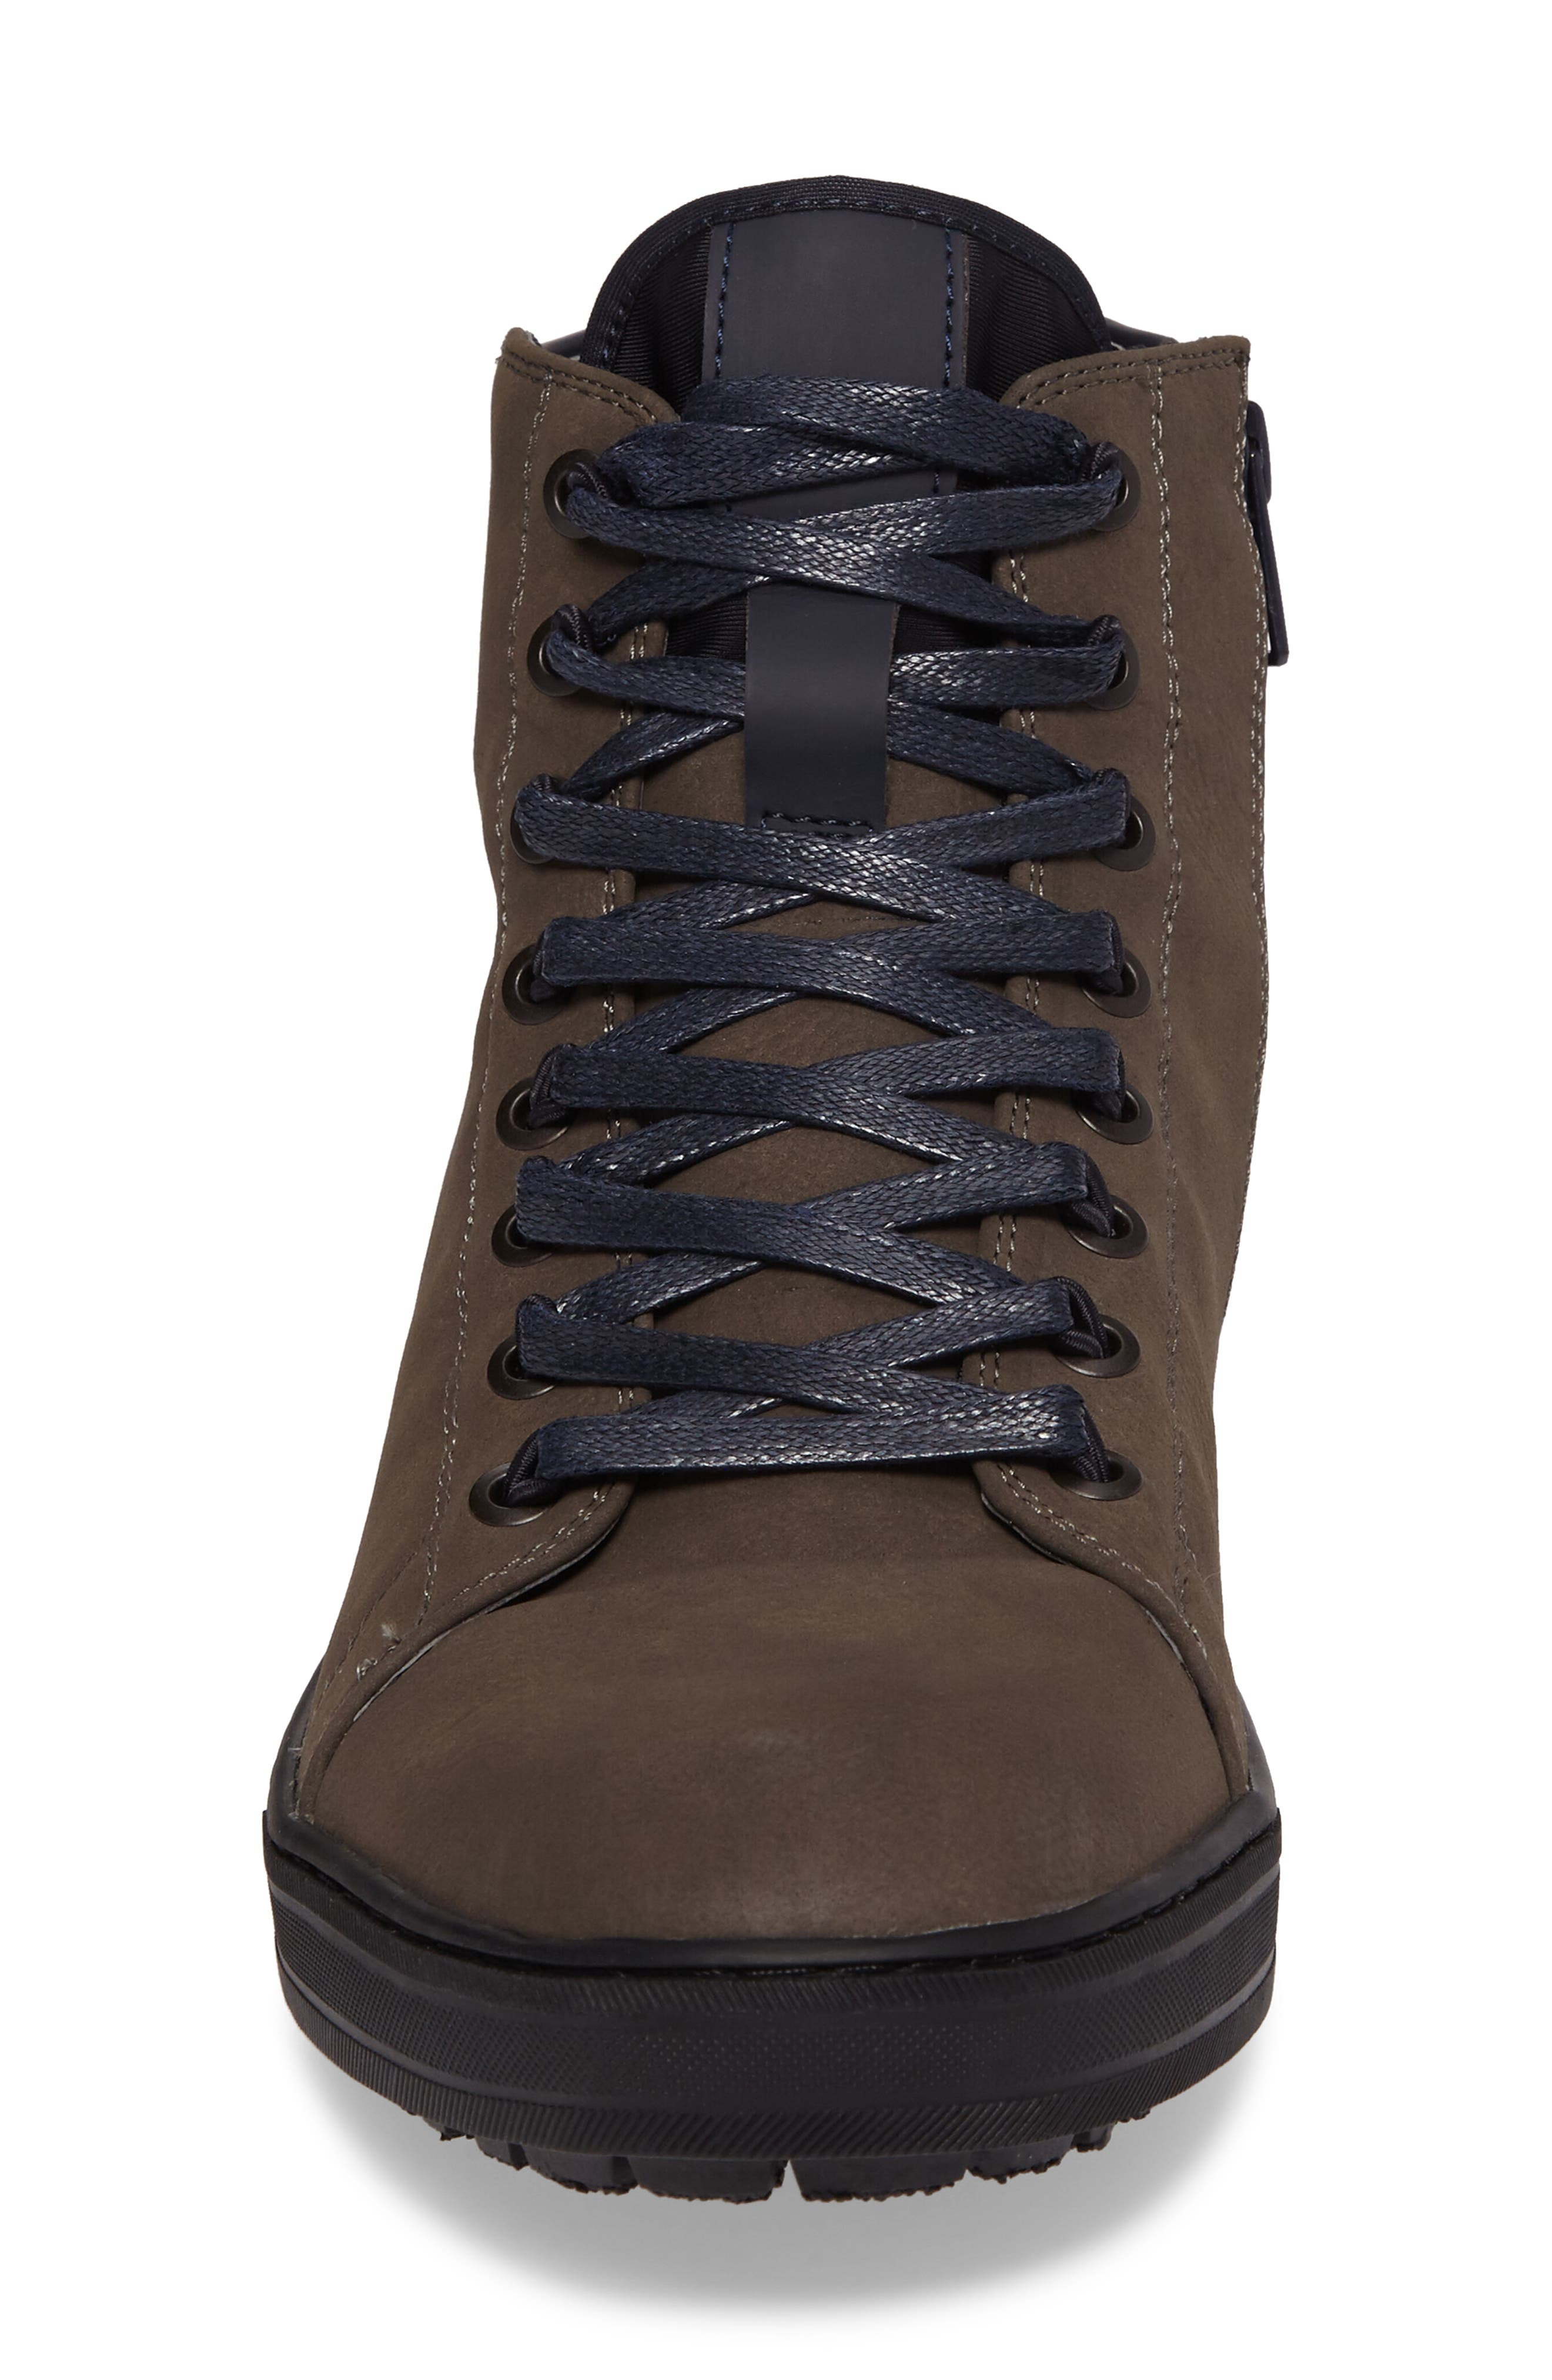 Kenneth Cole Reaction High-Top Sneaker,                             Alternate thumbnail 4, color,                             Dark Taupe